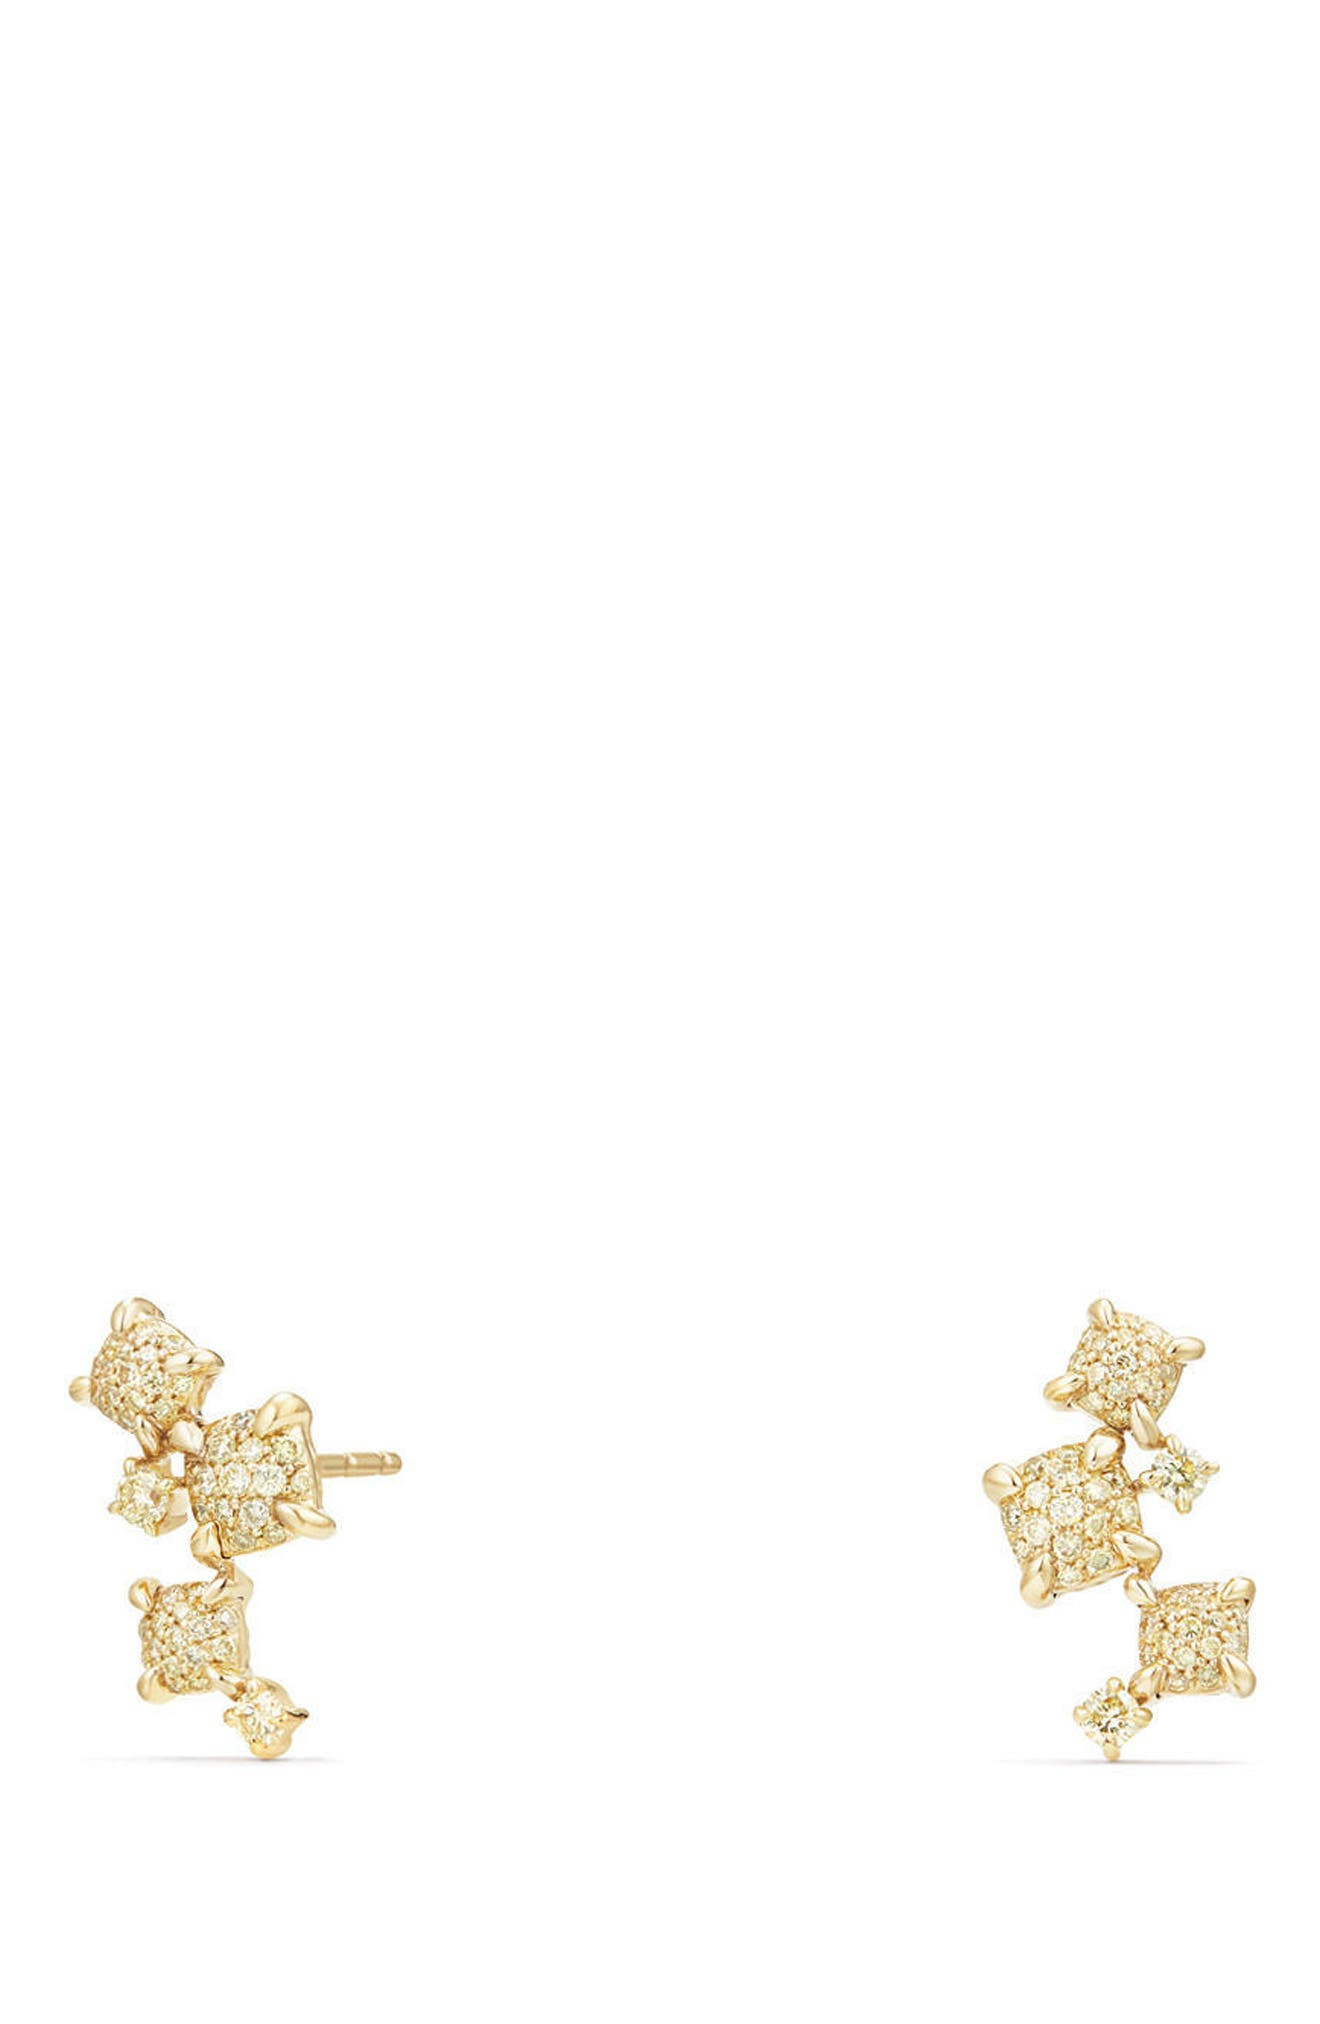 Petite Châtelaine Climber Earrings in 18K Gold with Diamonds,                         Main,                         color, Yellow Diamond